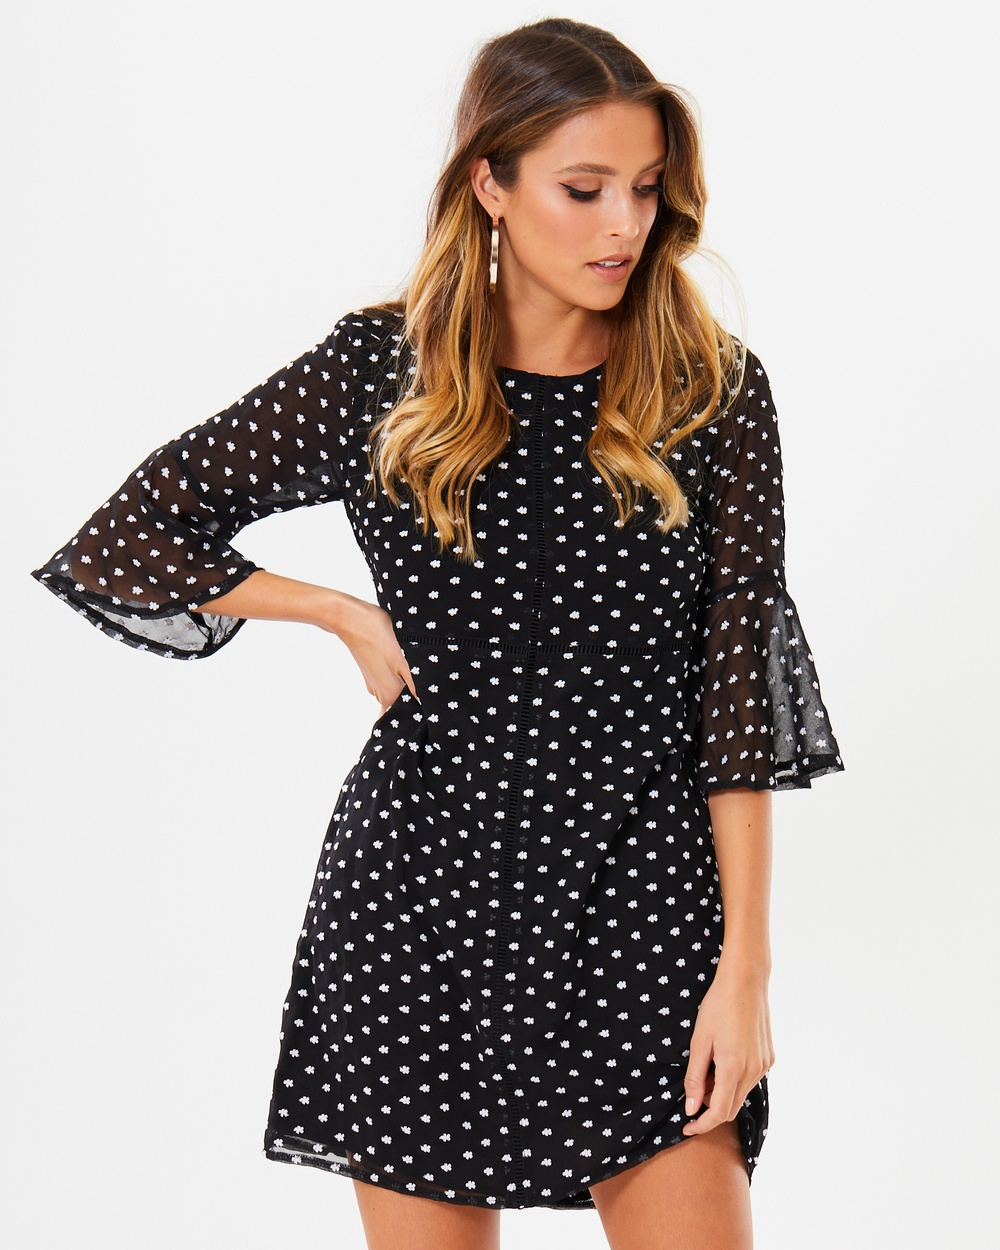 Calli Danette Flare Sleeve Shift Dress Dresses Black Daisy Embroidery Danette Flare Sleeve Shift Dress